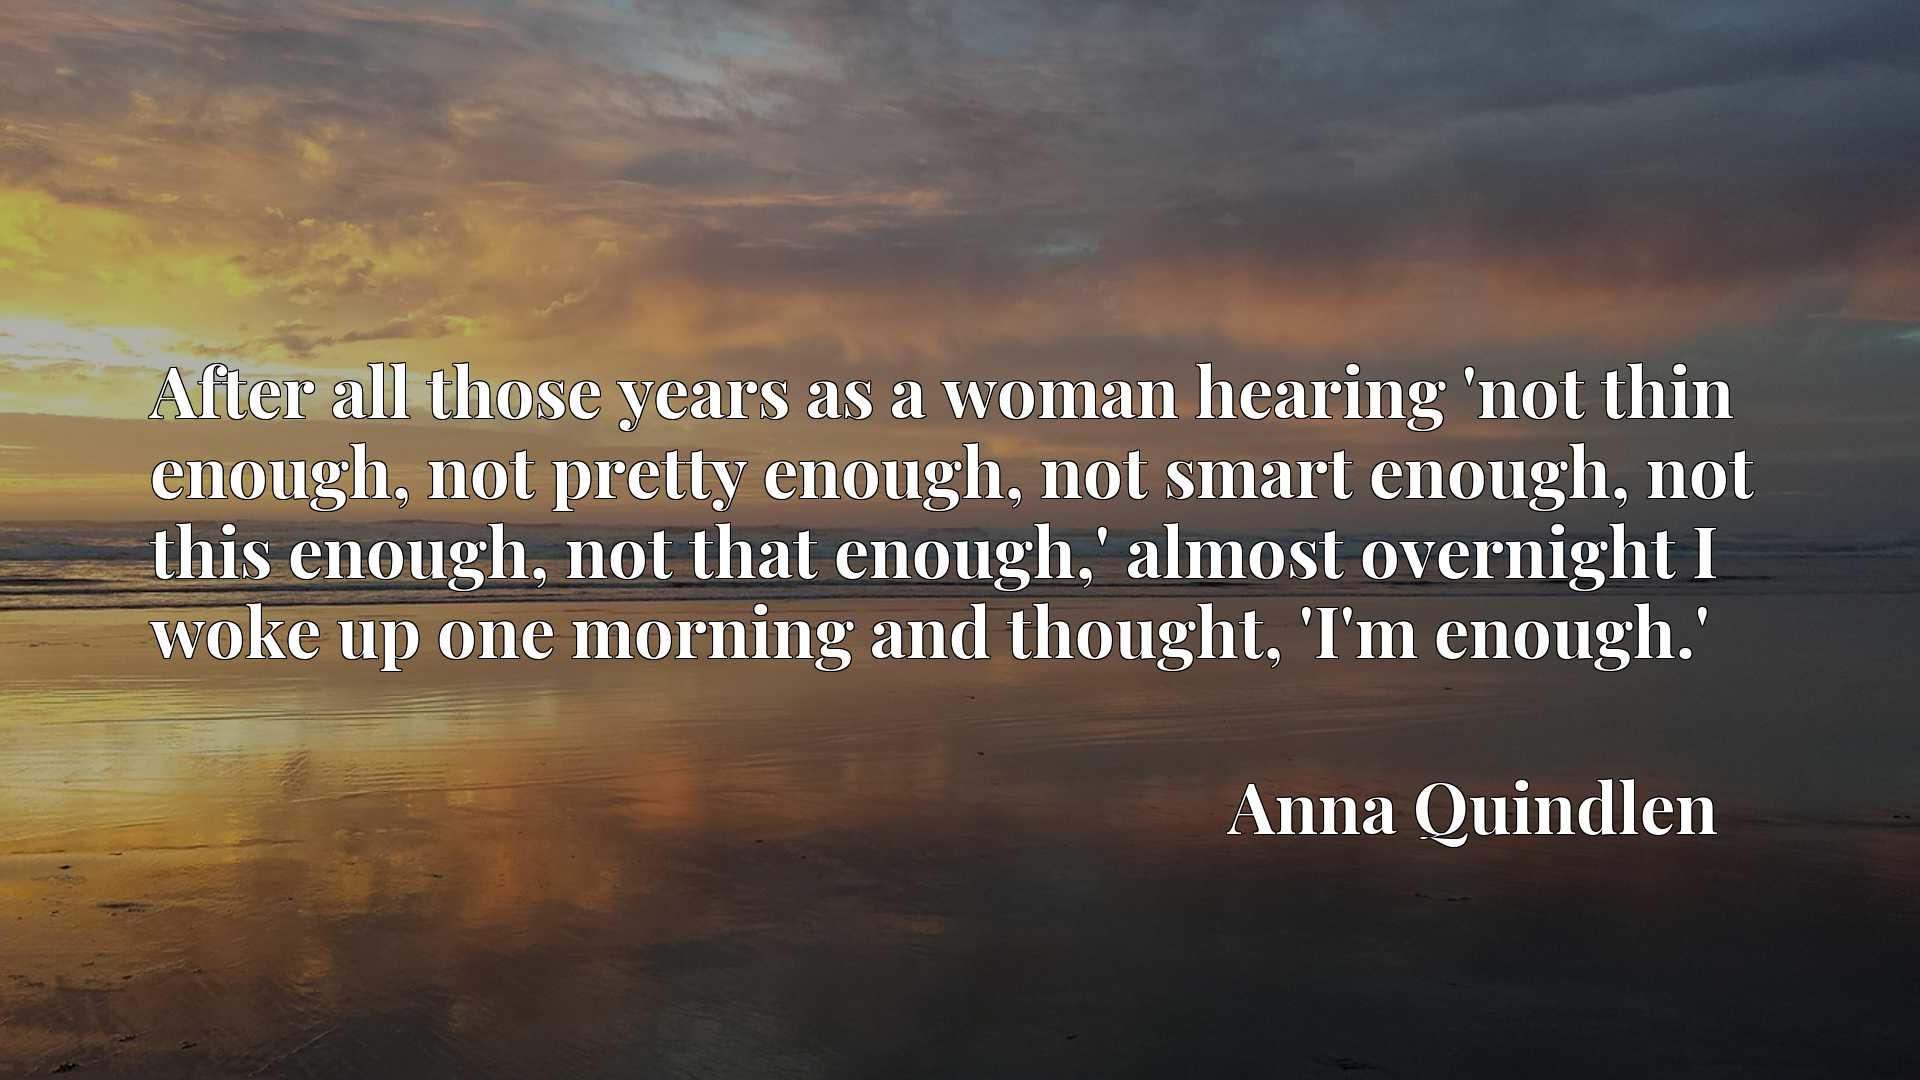 After all those years as a woman hearing 'not thin enough, not pretty enough, not smart enough, not this enough, not that enough,' almost overnight I woke up one morning and thought, 'I'm enough.'